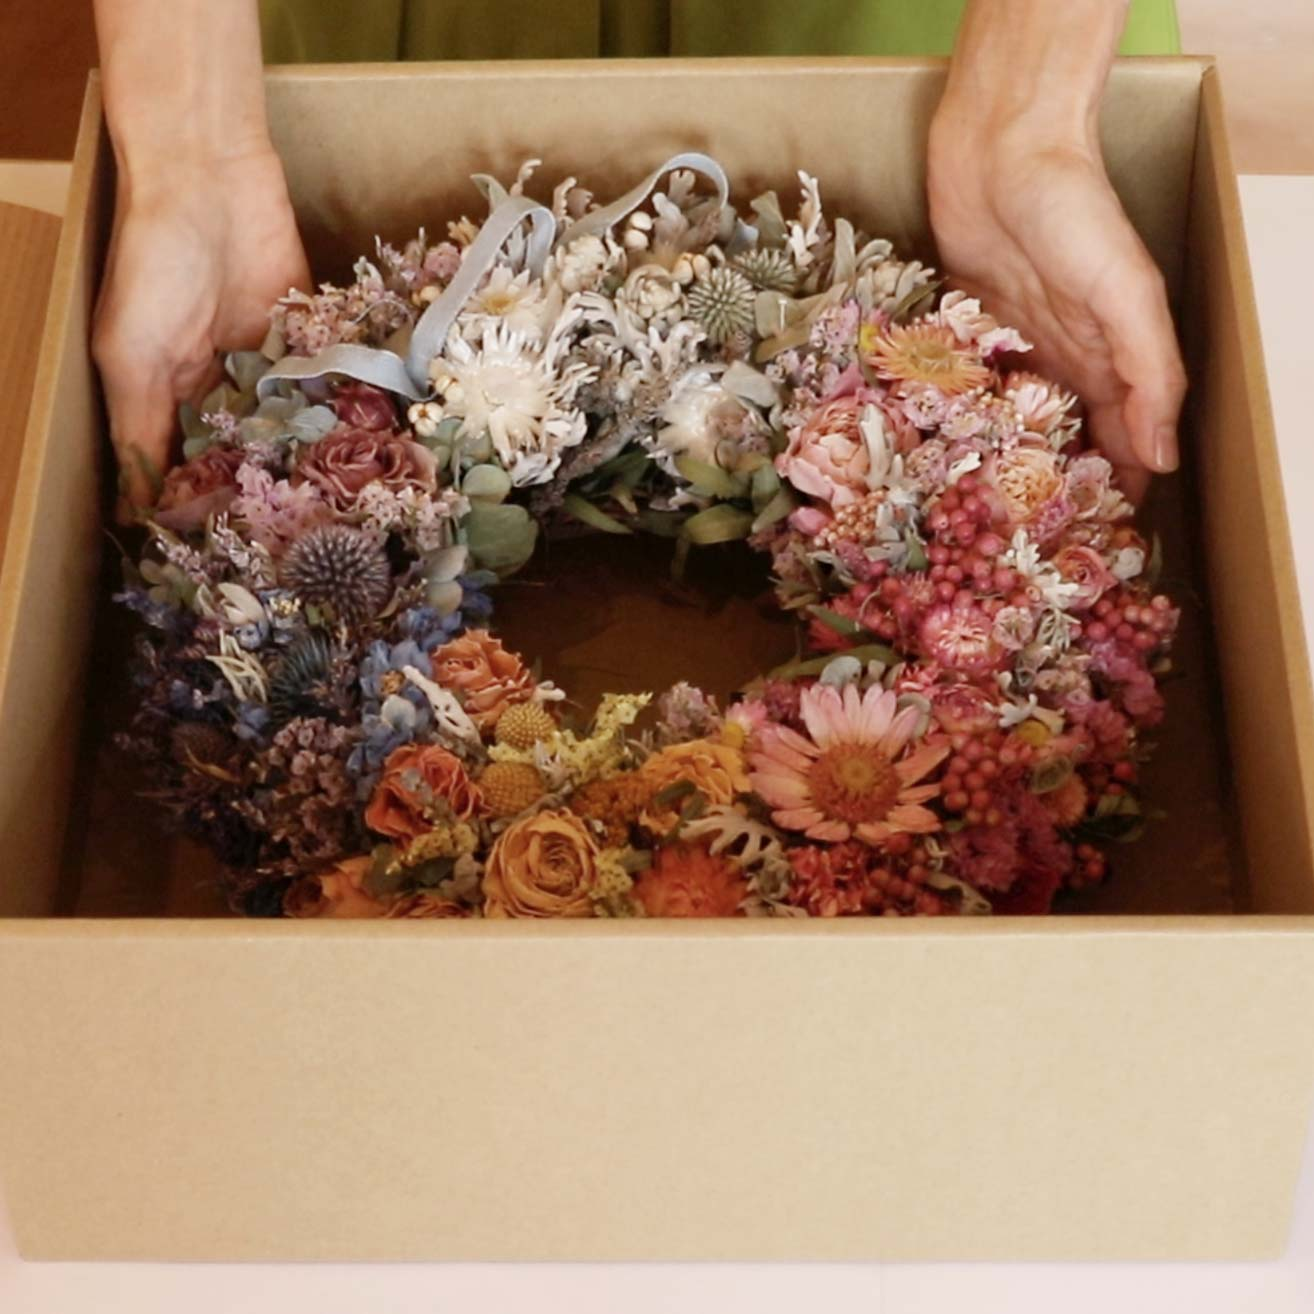 How to Safely Pack a Dried Flower Wreath